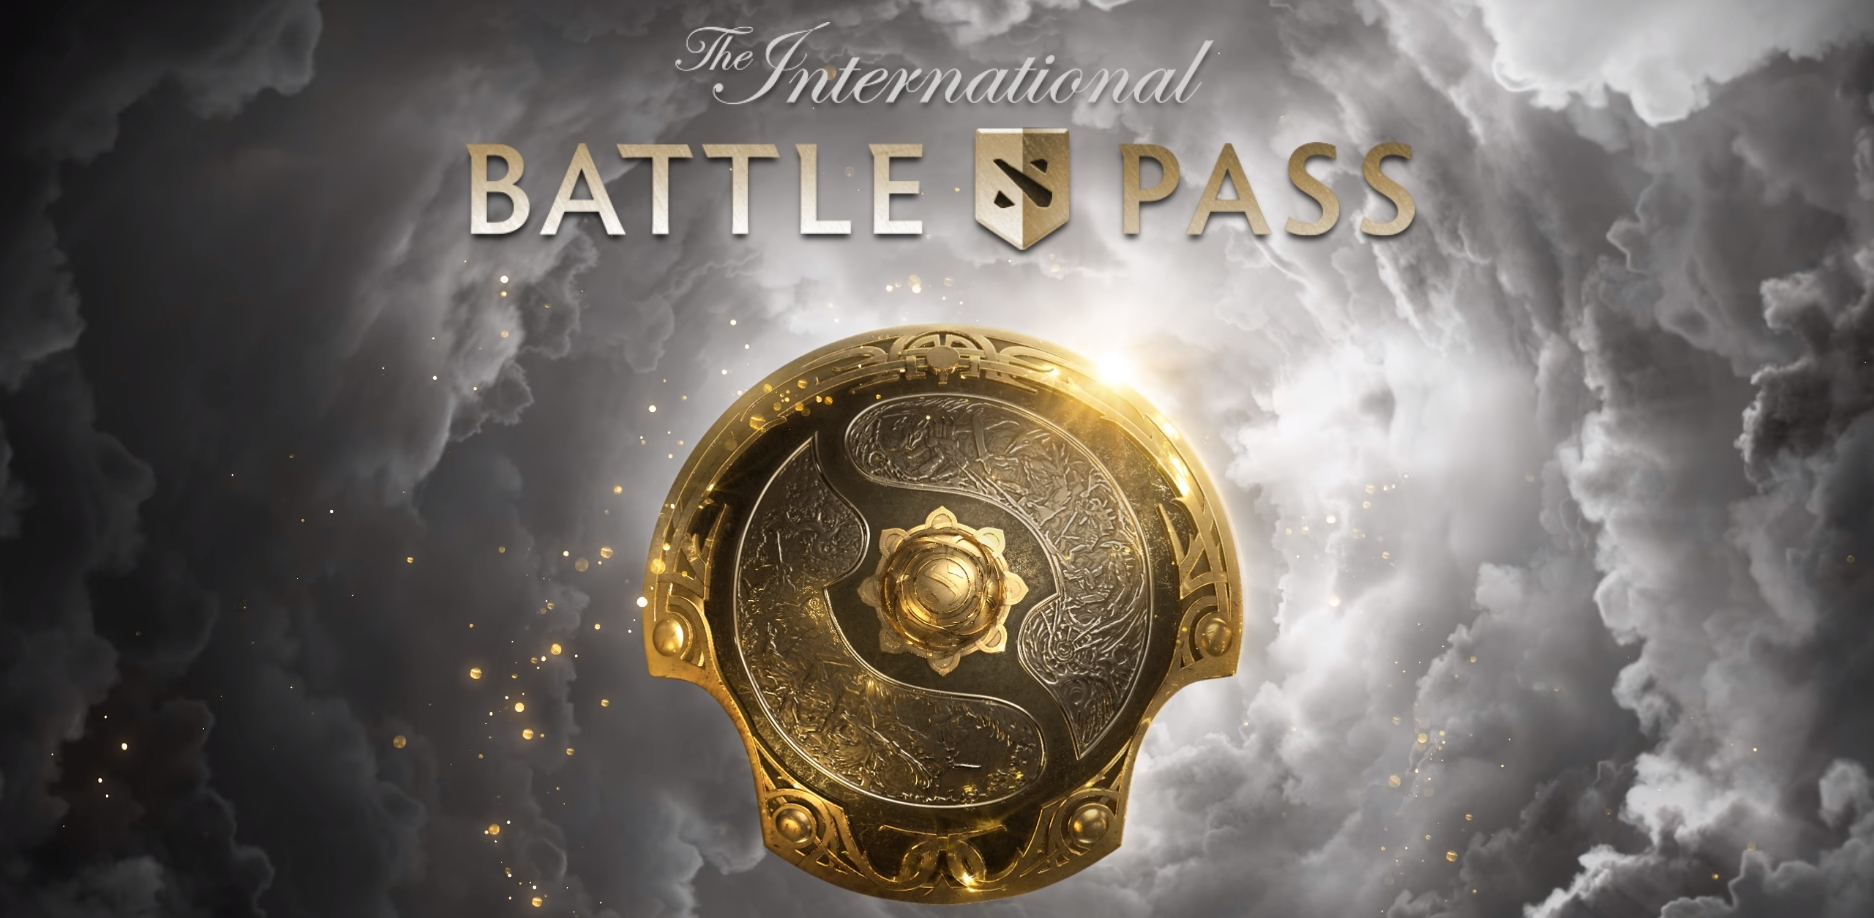 All new and updated features added in Dota 2's International 2020 Battle Pass